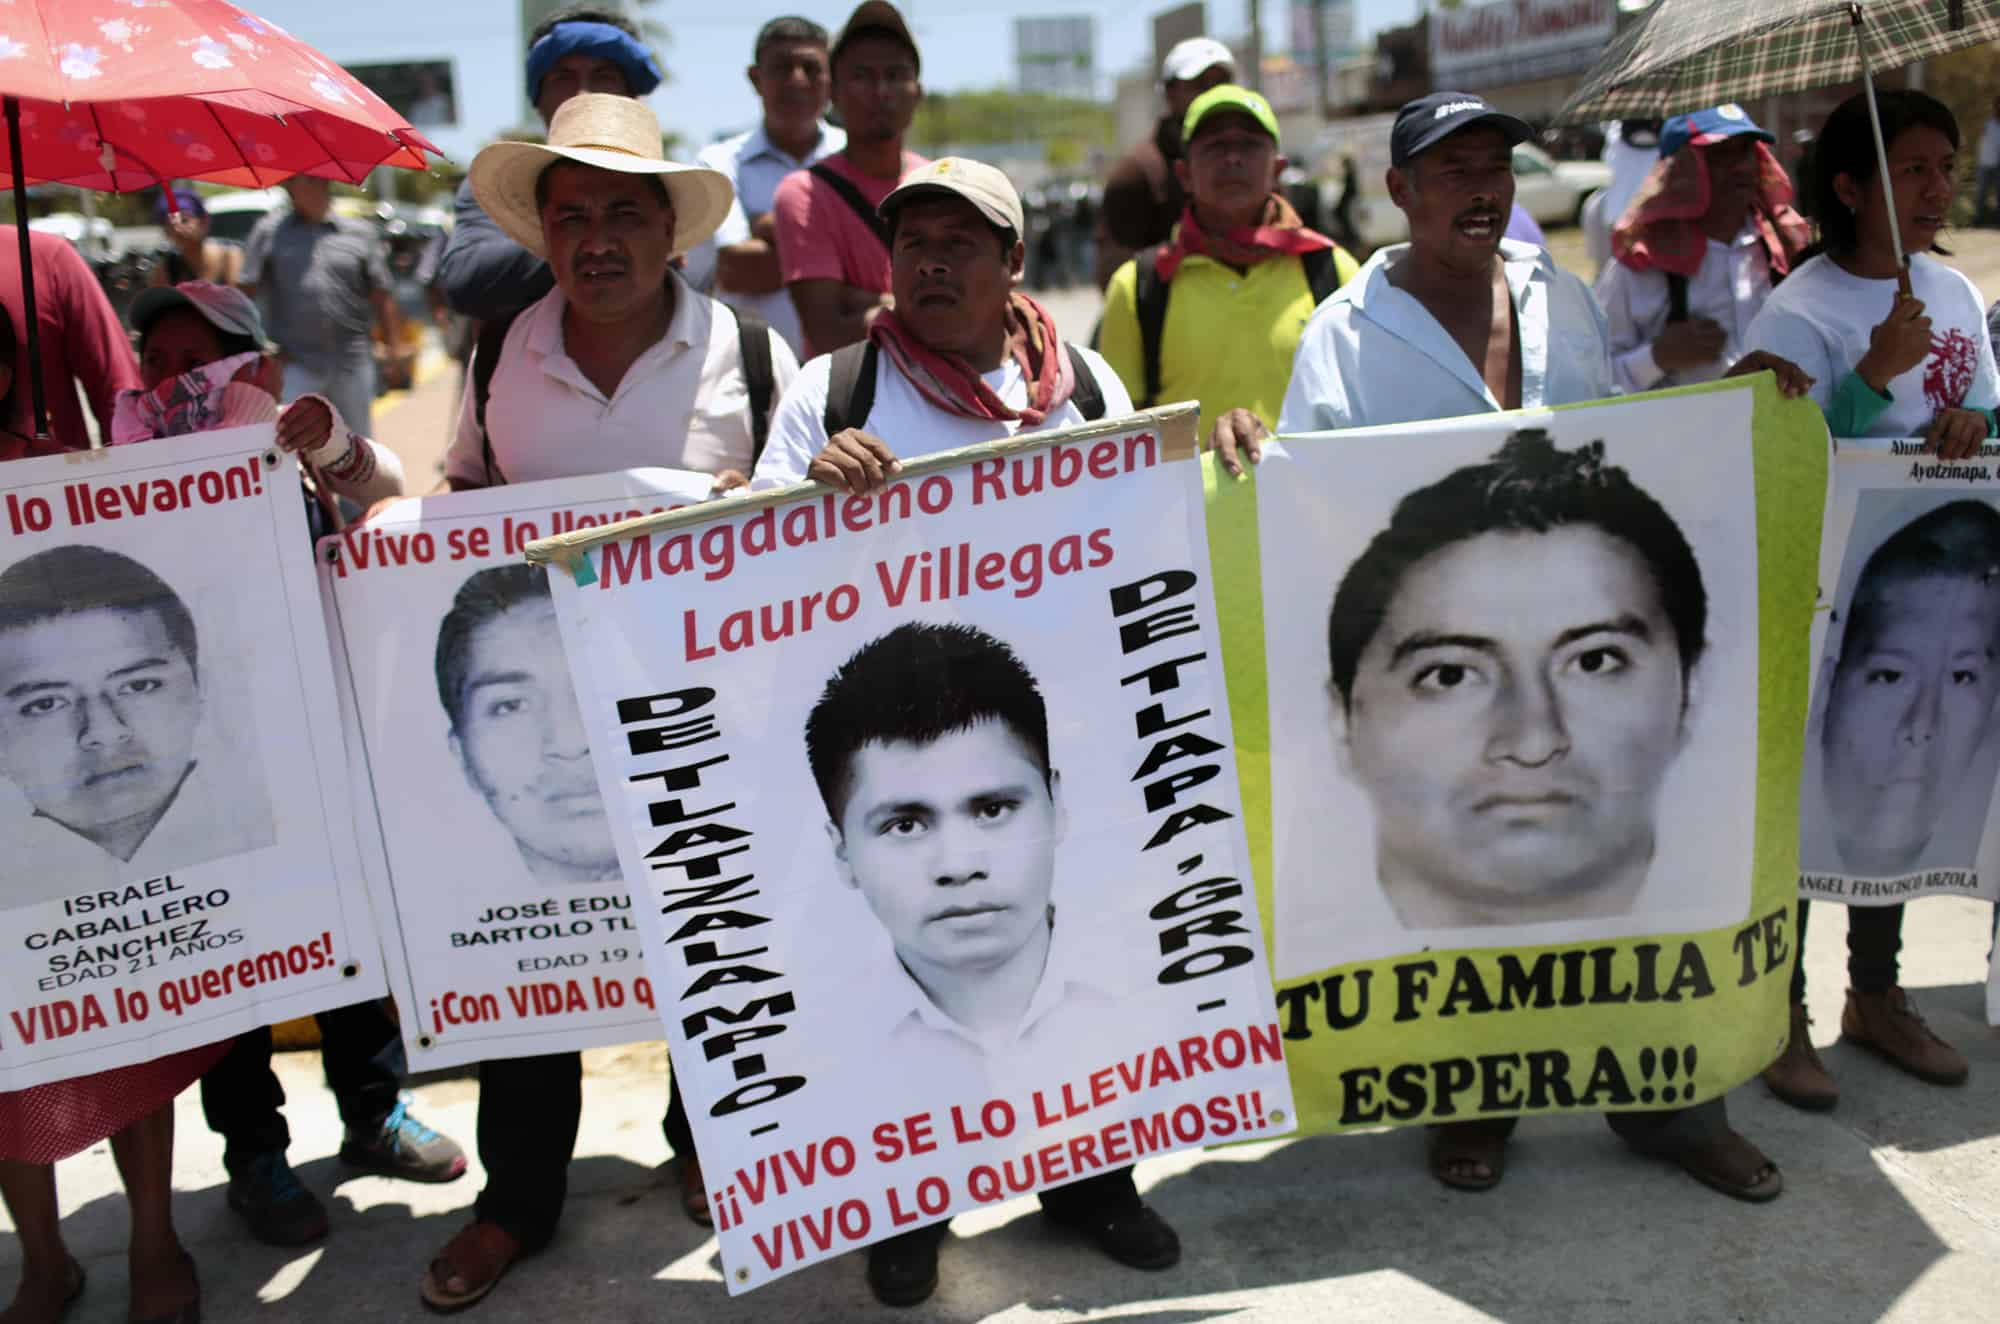 Parents and relatives of the 43 students from Ayotzinapa participate in a protest in Acapulco, Guerrero State, Mexico on March 24, 2015 demanding justice on their disappearance and on the death of teacher Claudio Castillo killed during a protest on February 24.